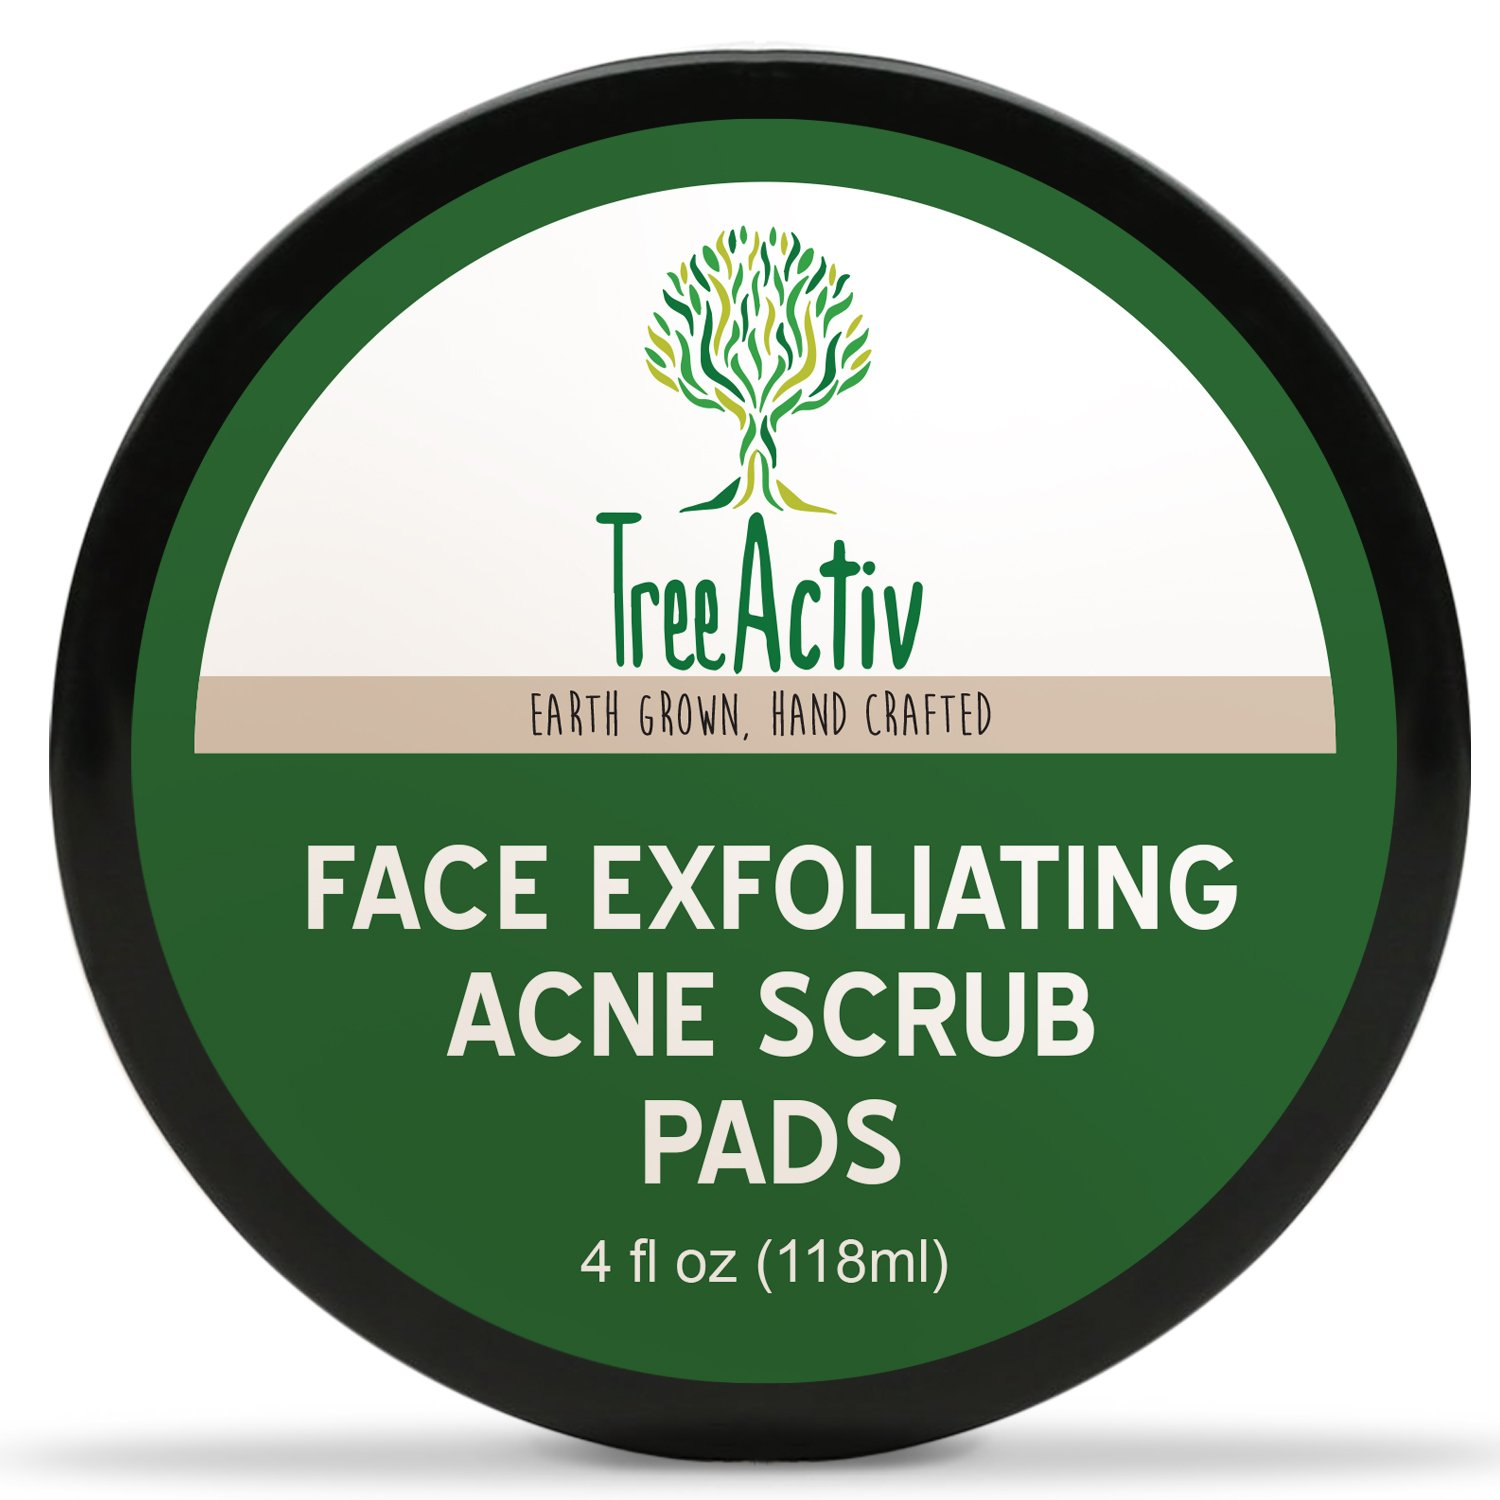 TreeActiv Face Exfoliating Acne Scrub Pads | Best Natural Blackhead Clearing Treatment | Safely Extracts and Removes Blackheads | Prevents Future Breakouts | Men Women Teens | 4 Ounce (12 Pads) …